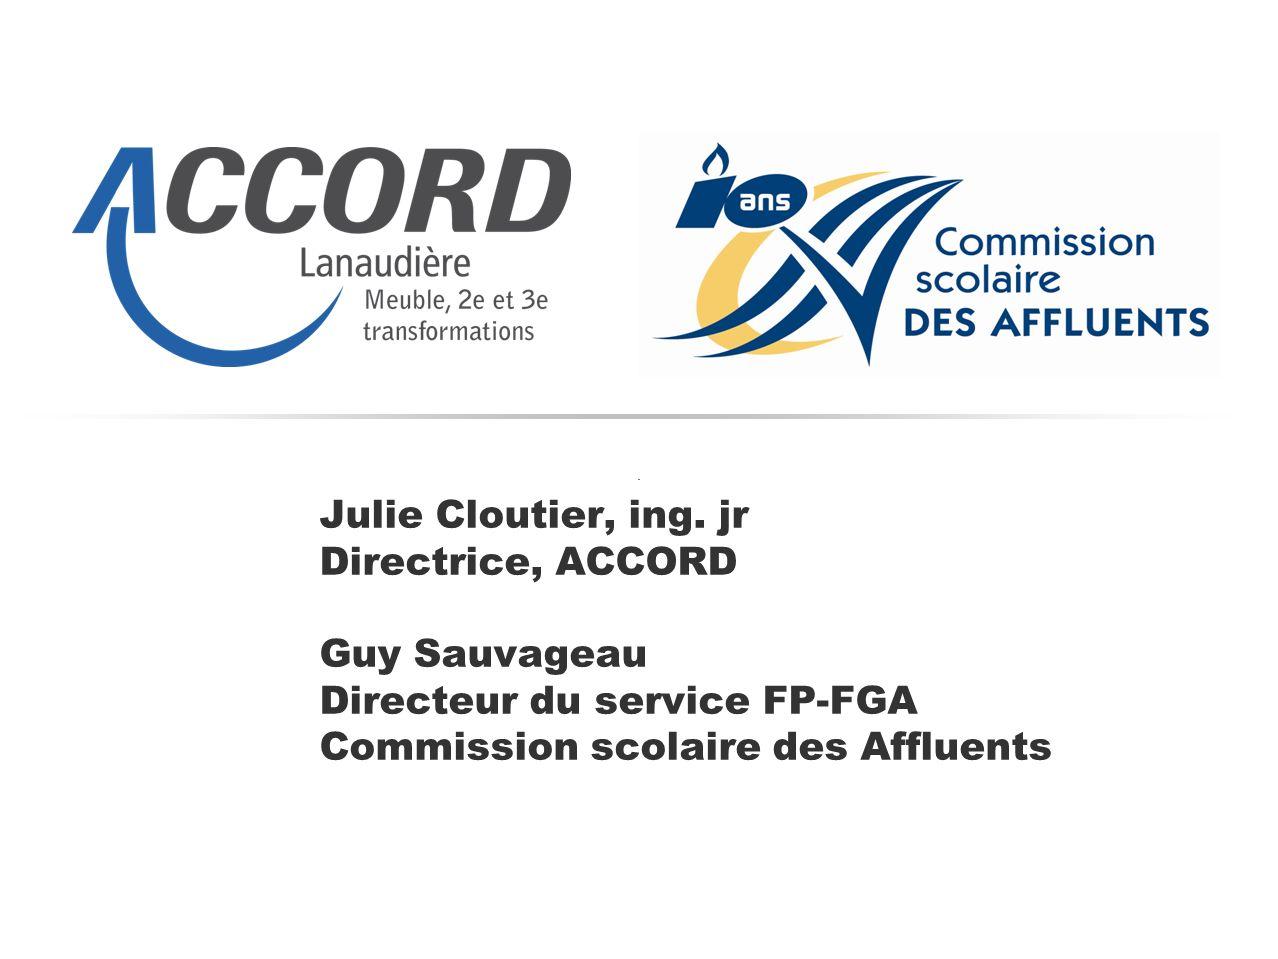 Julie Cloutier, ing. jr Directrice, ACCORD Guy Sauvageau Directeur du service FP-FGA Commission scolaire des Affluents